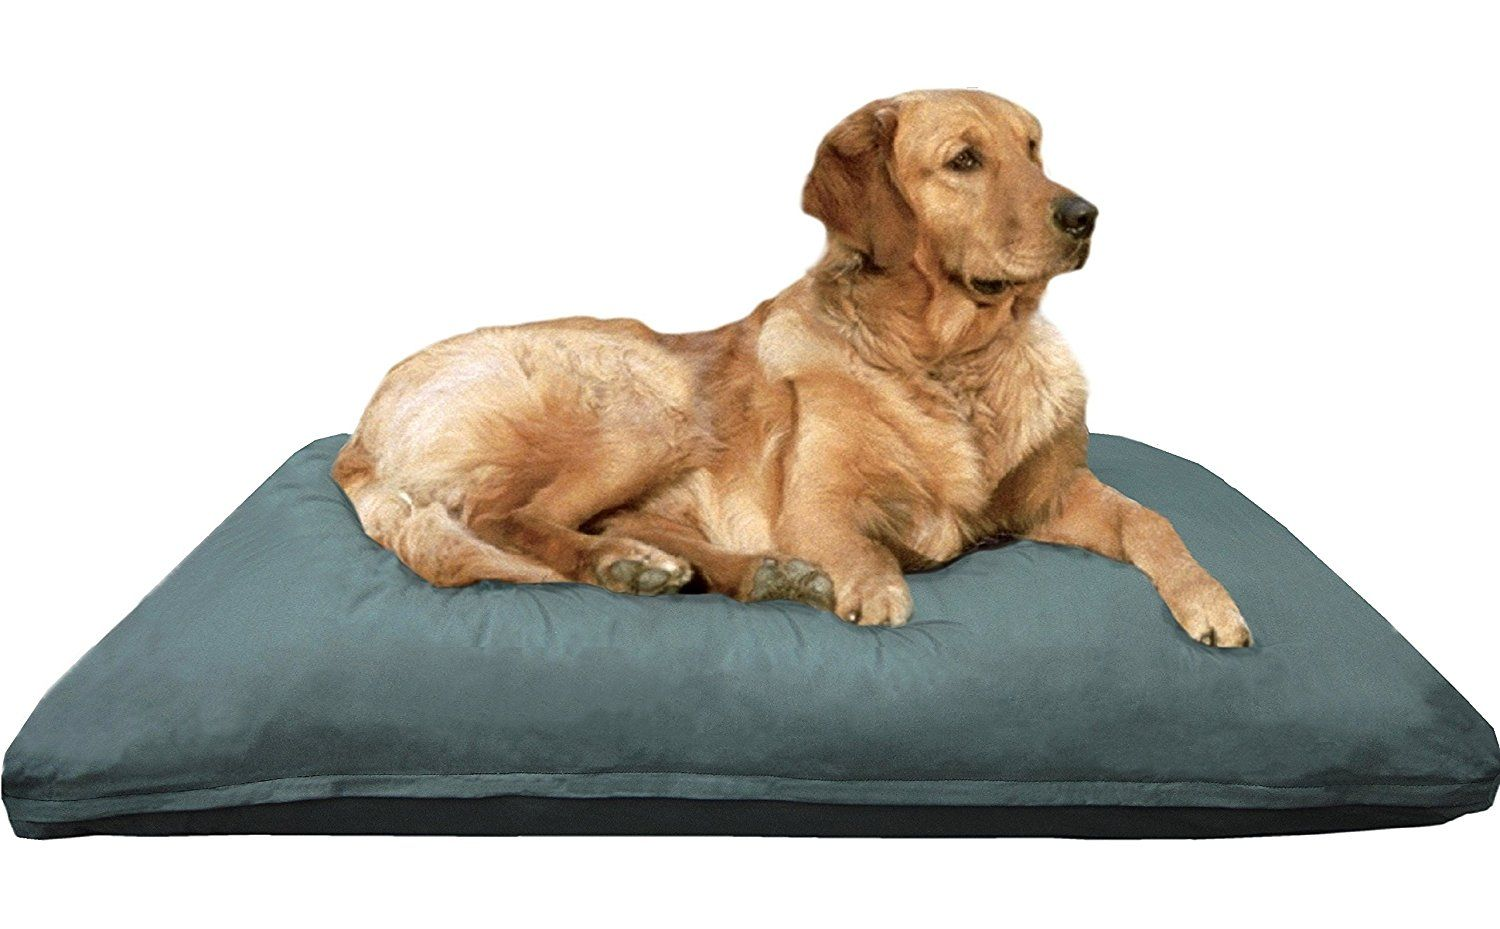 Dogbed4less Jumbo Memory Foam Dog Bed Pillow With Orthopedic Comfort Durable Waterproof Canvas Pet Bed Cover 55 X47 Dog Pillow Bed Pet Bed Cover Dog Bed